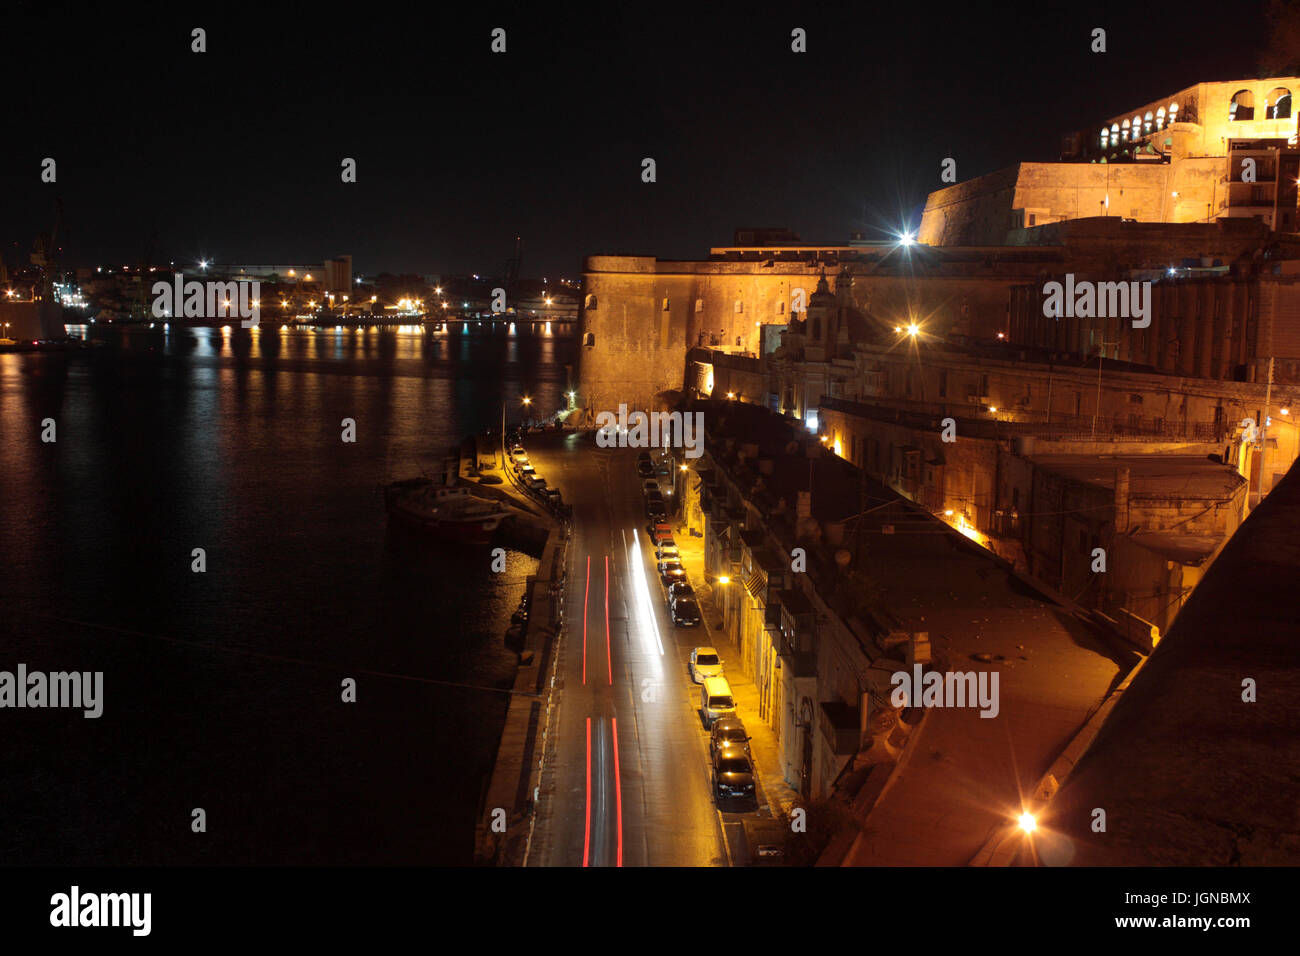 Barriera Wharf, Valletta, Malta, with fortifications lit up at night. The Upper Barrakka is at top right. - Stock Image